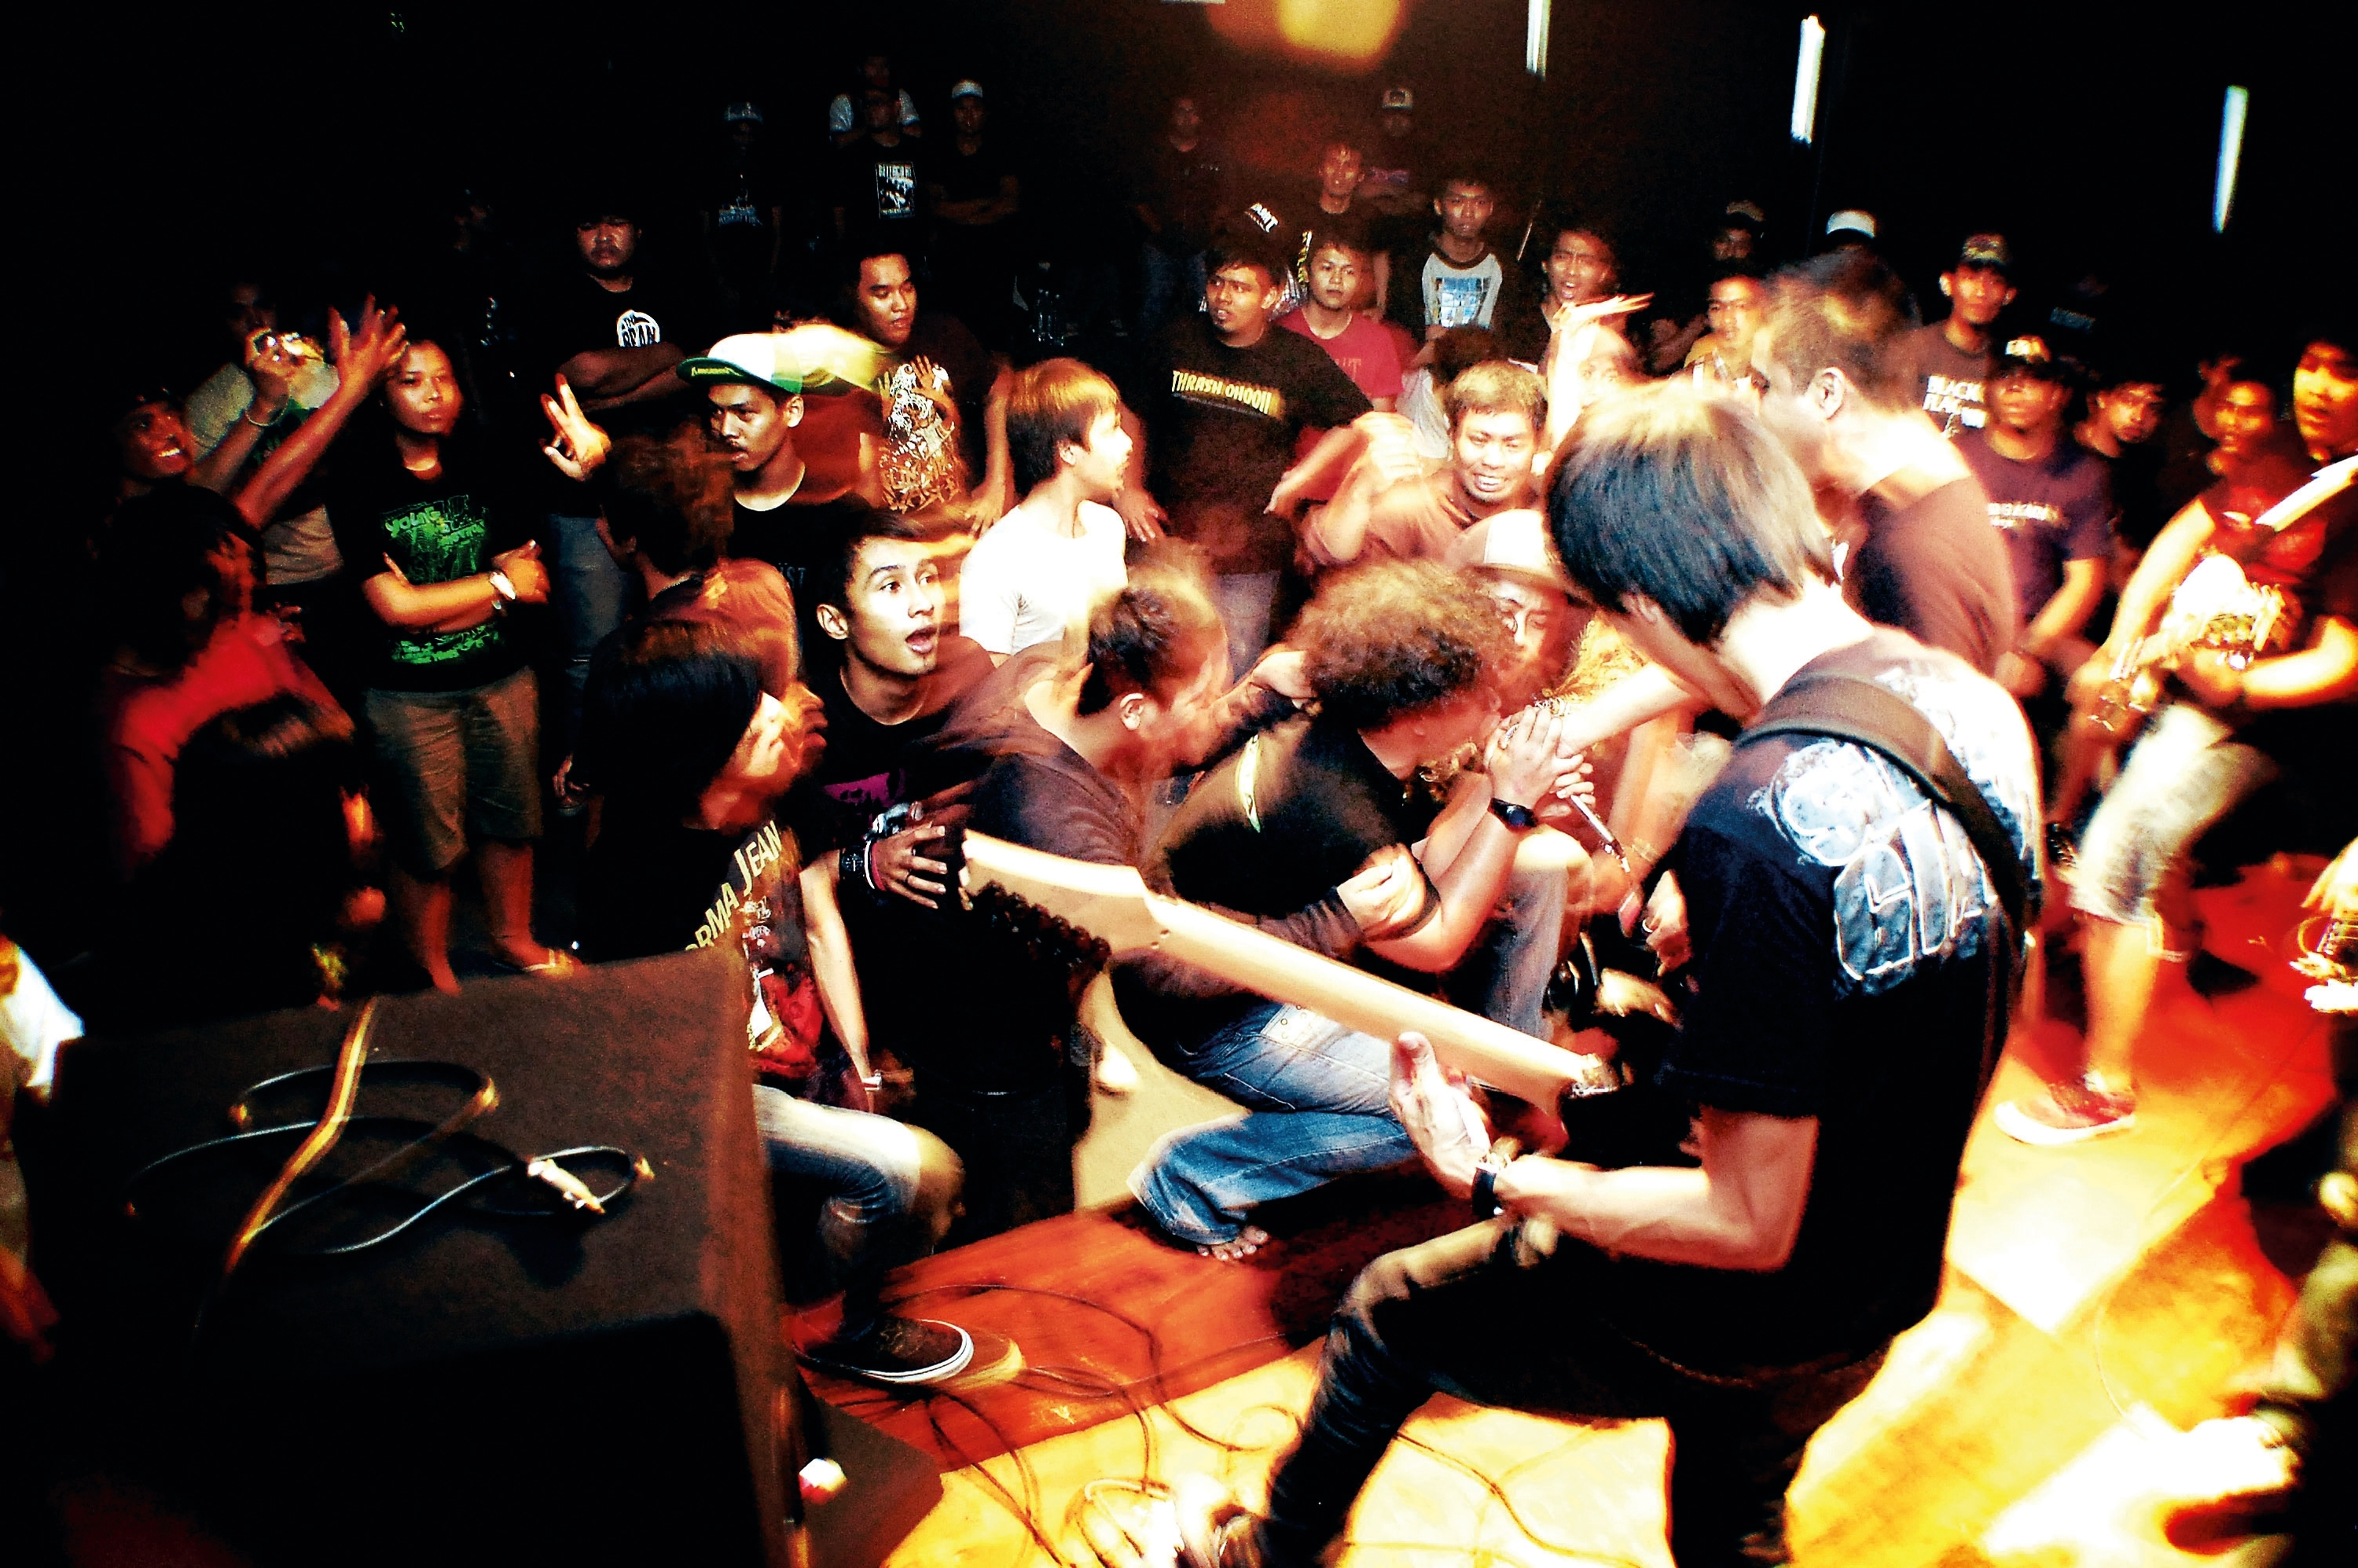 Penang's alternative music scene